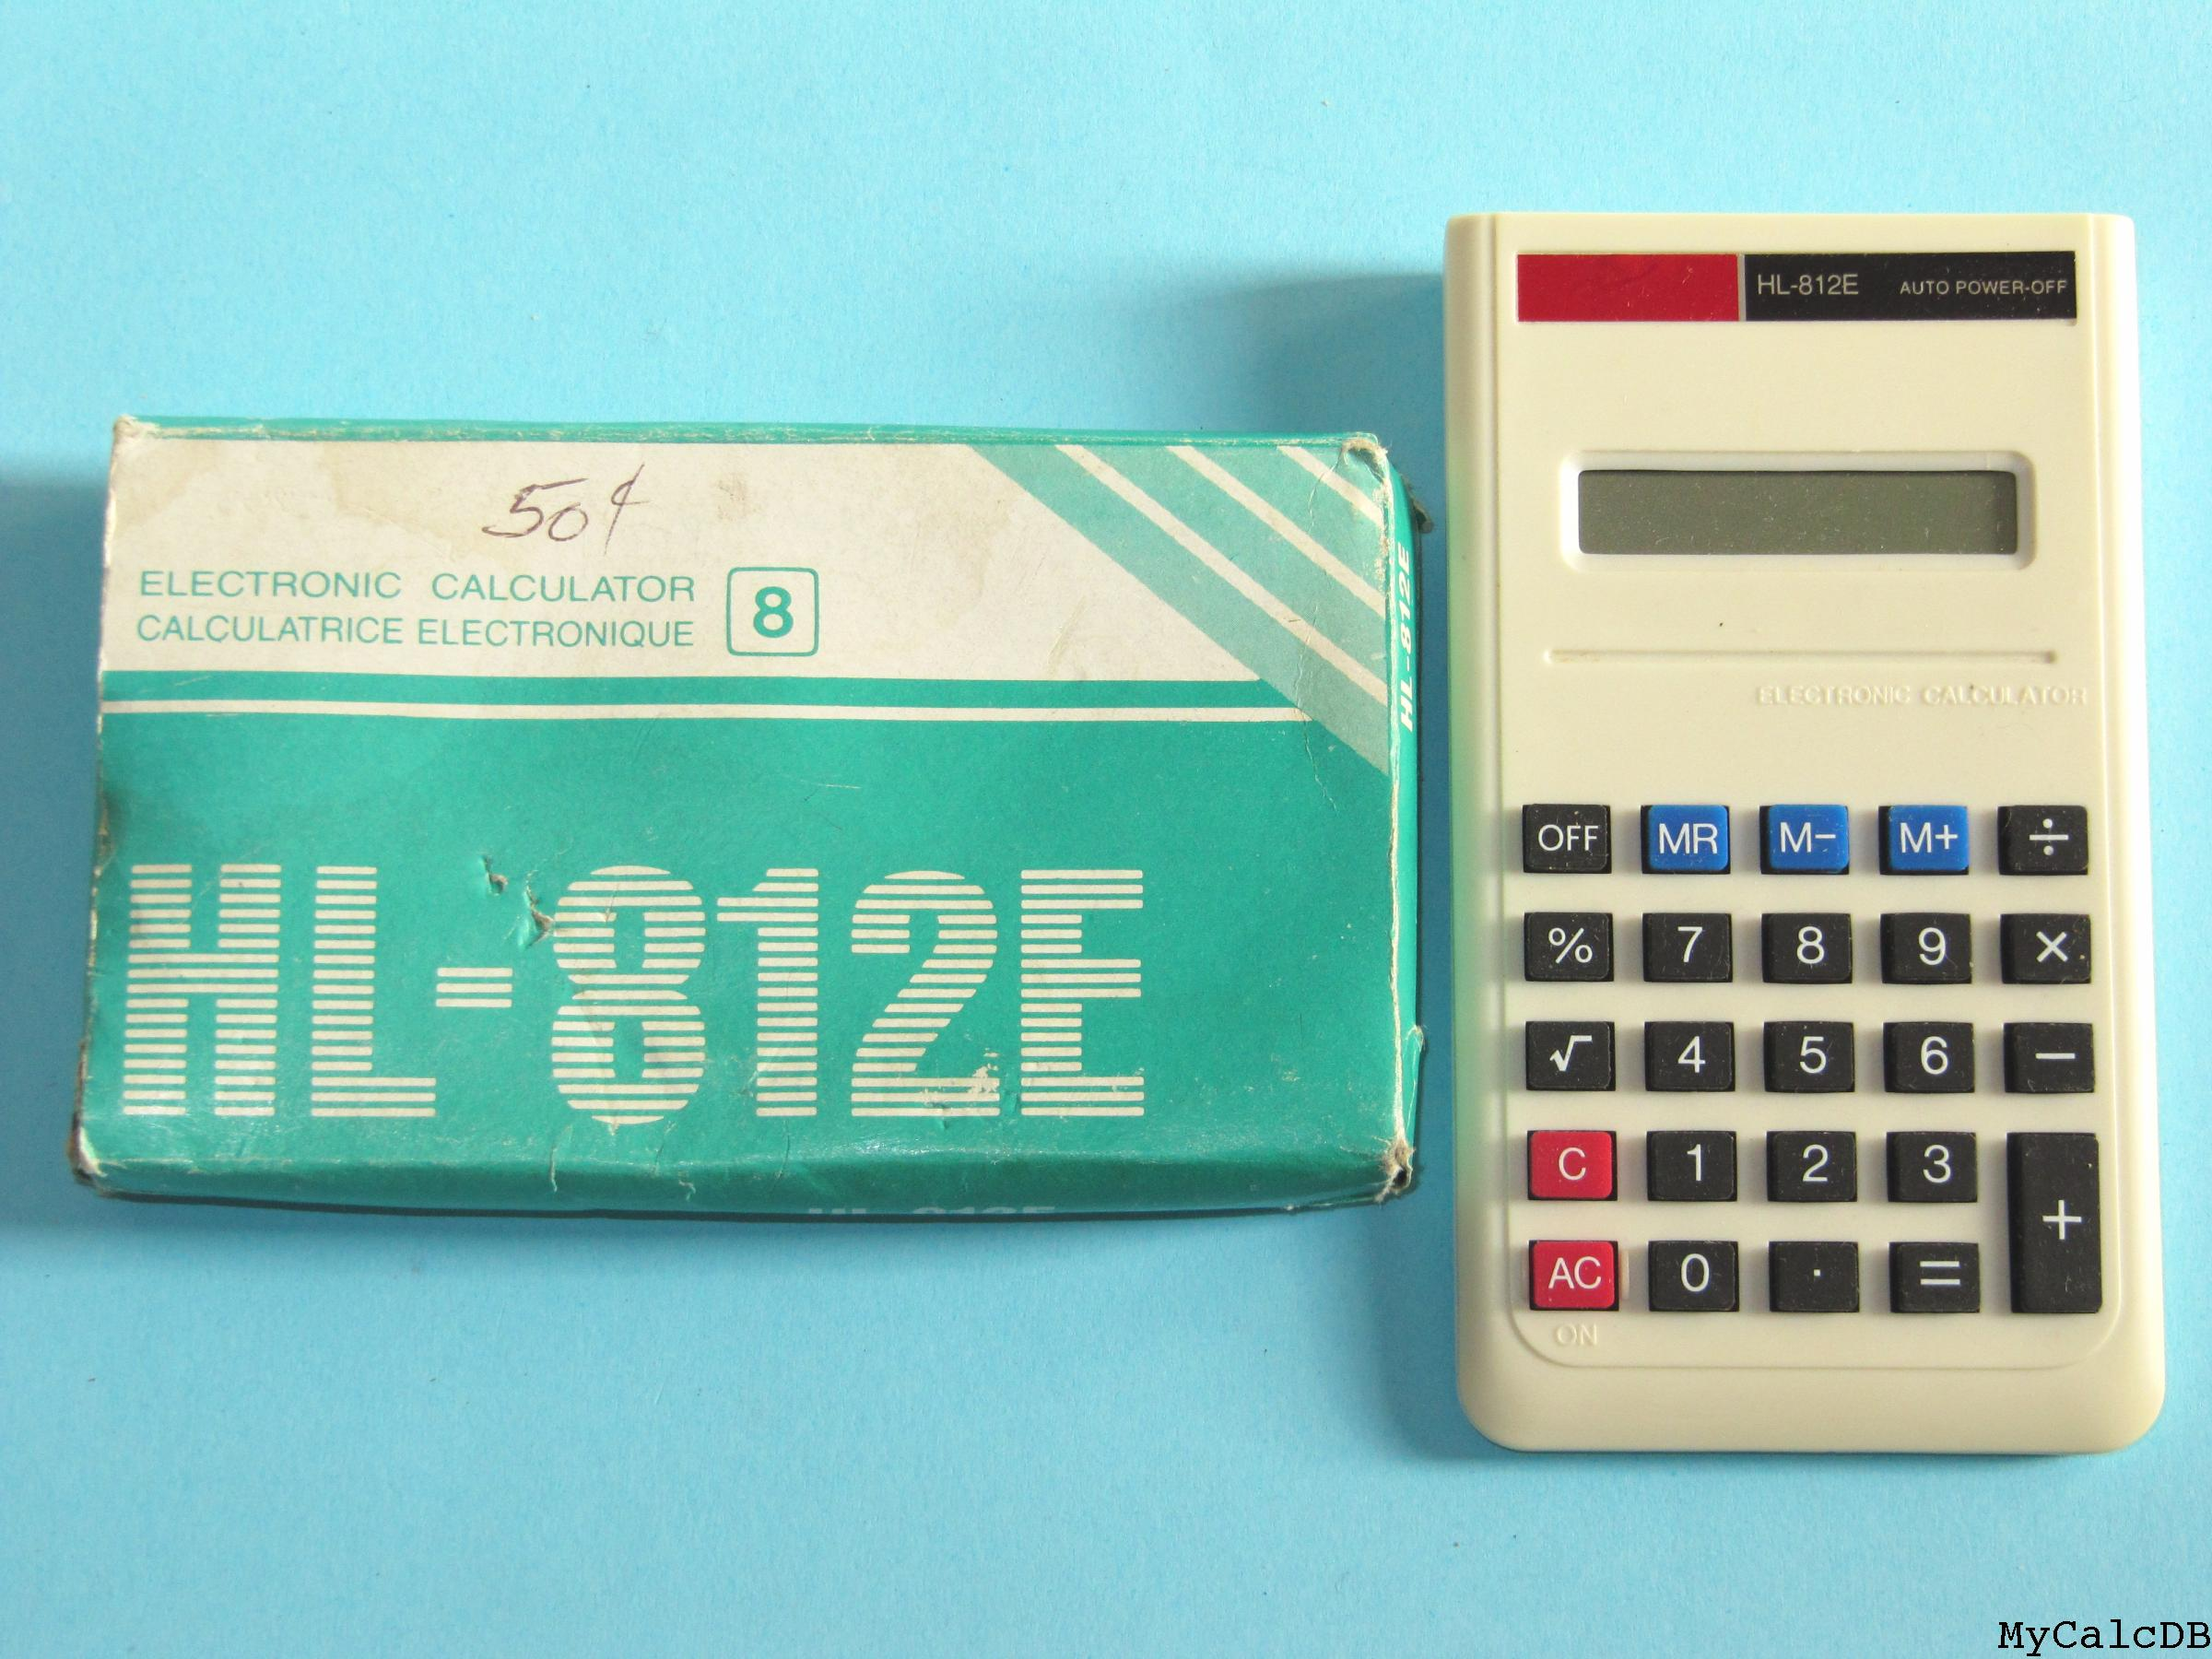 FAKE Casio HL-812E